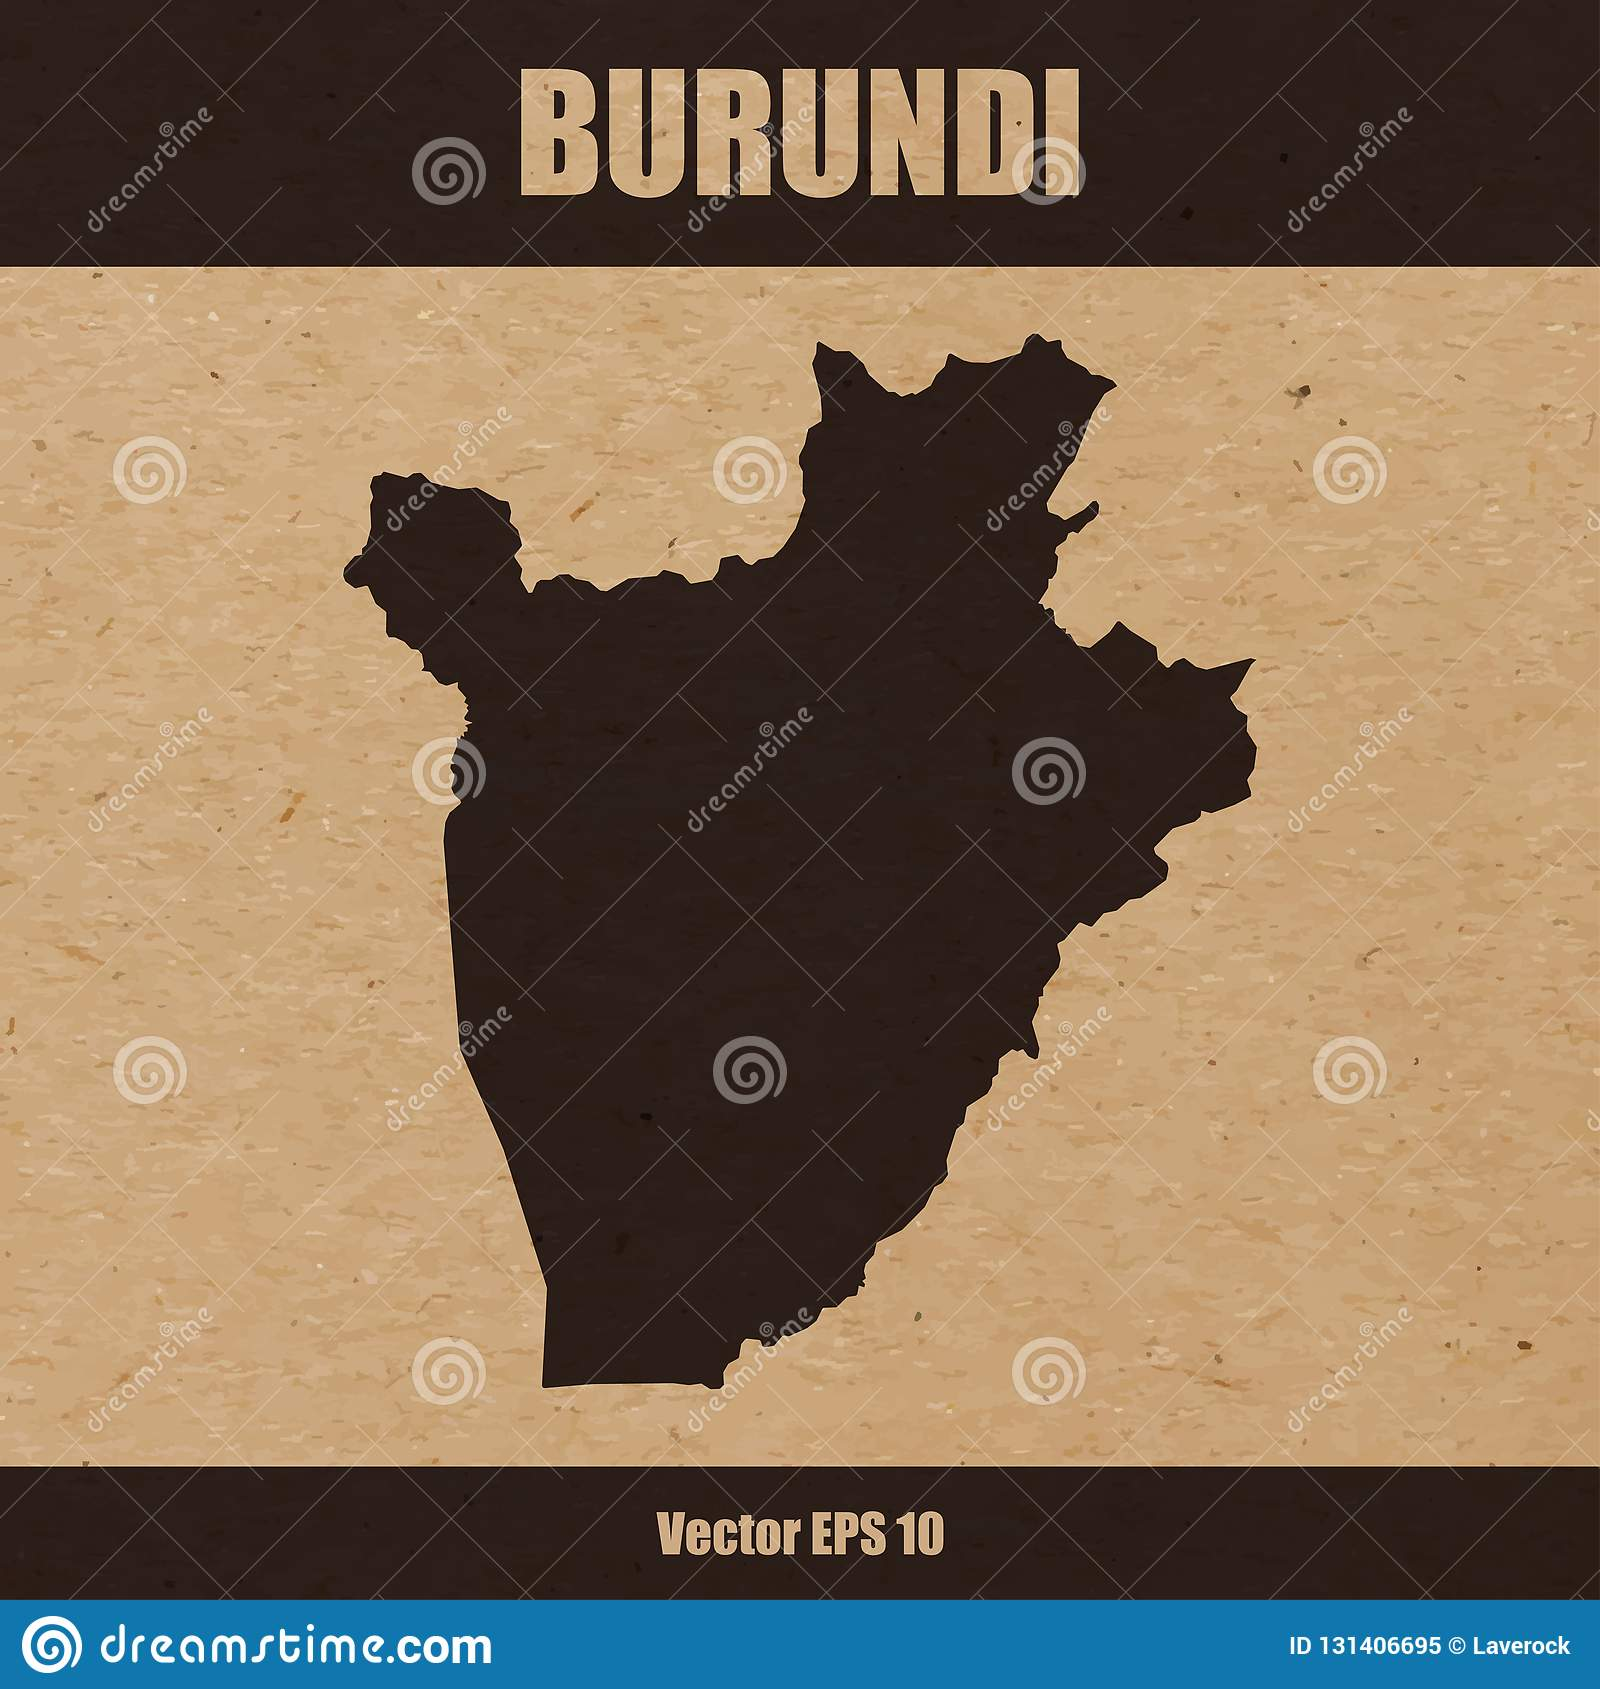 Detailed Map Of Burundi On Craft Paper Or Cardboard Background Stock on road map suriname, road map spain, road map west africa, road map southern africa, road map lebanon, road map hungary, road map martinique, road map kenya, road map anguilla, road map zimbabwe, road map bosnia and herzegovina, road map lesotho, road map cameroon, road map congo, road map ethiopia, road map italy, road map guam, road map vatican city, road map maputo, road map mali,